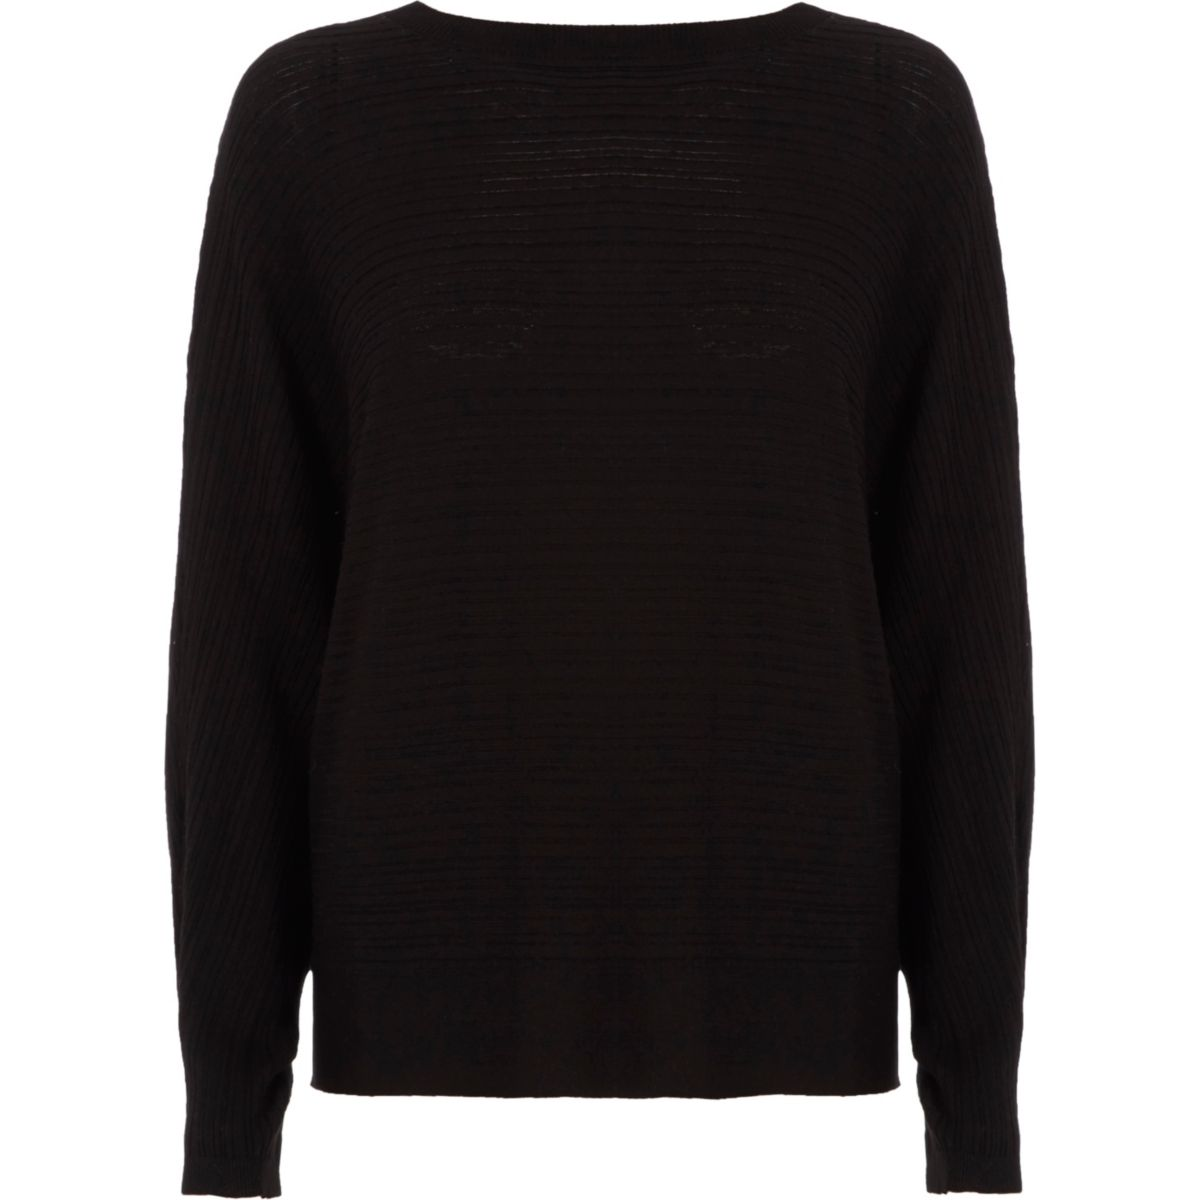 Black ribbed tie back knit sweater